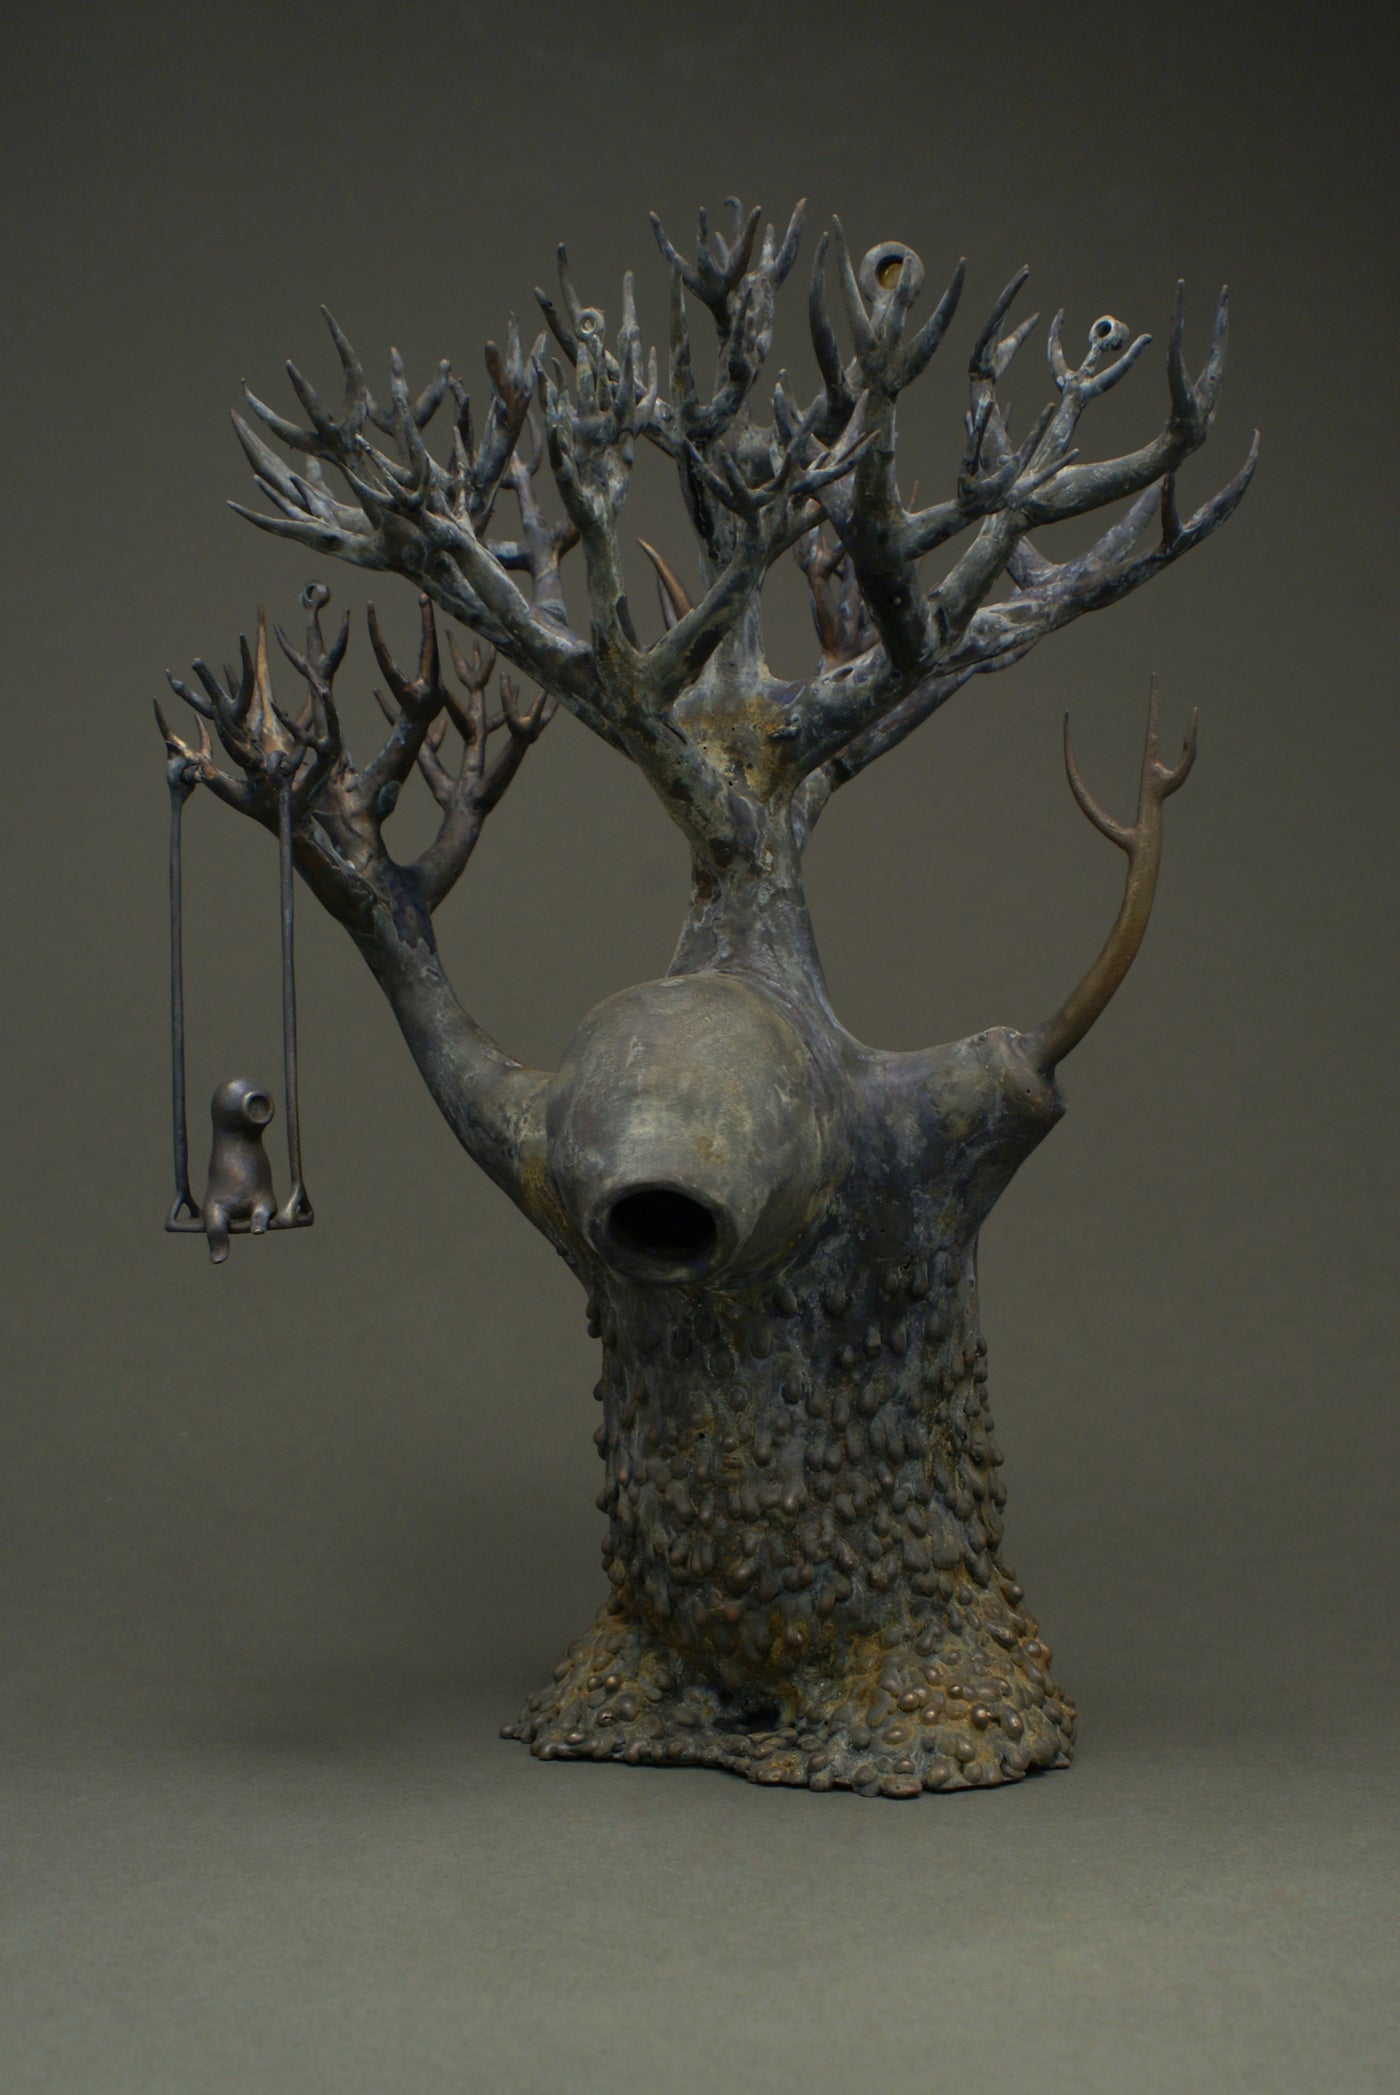 Surreal bronze sculpture for sale